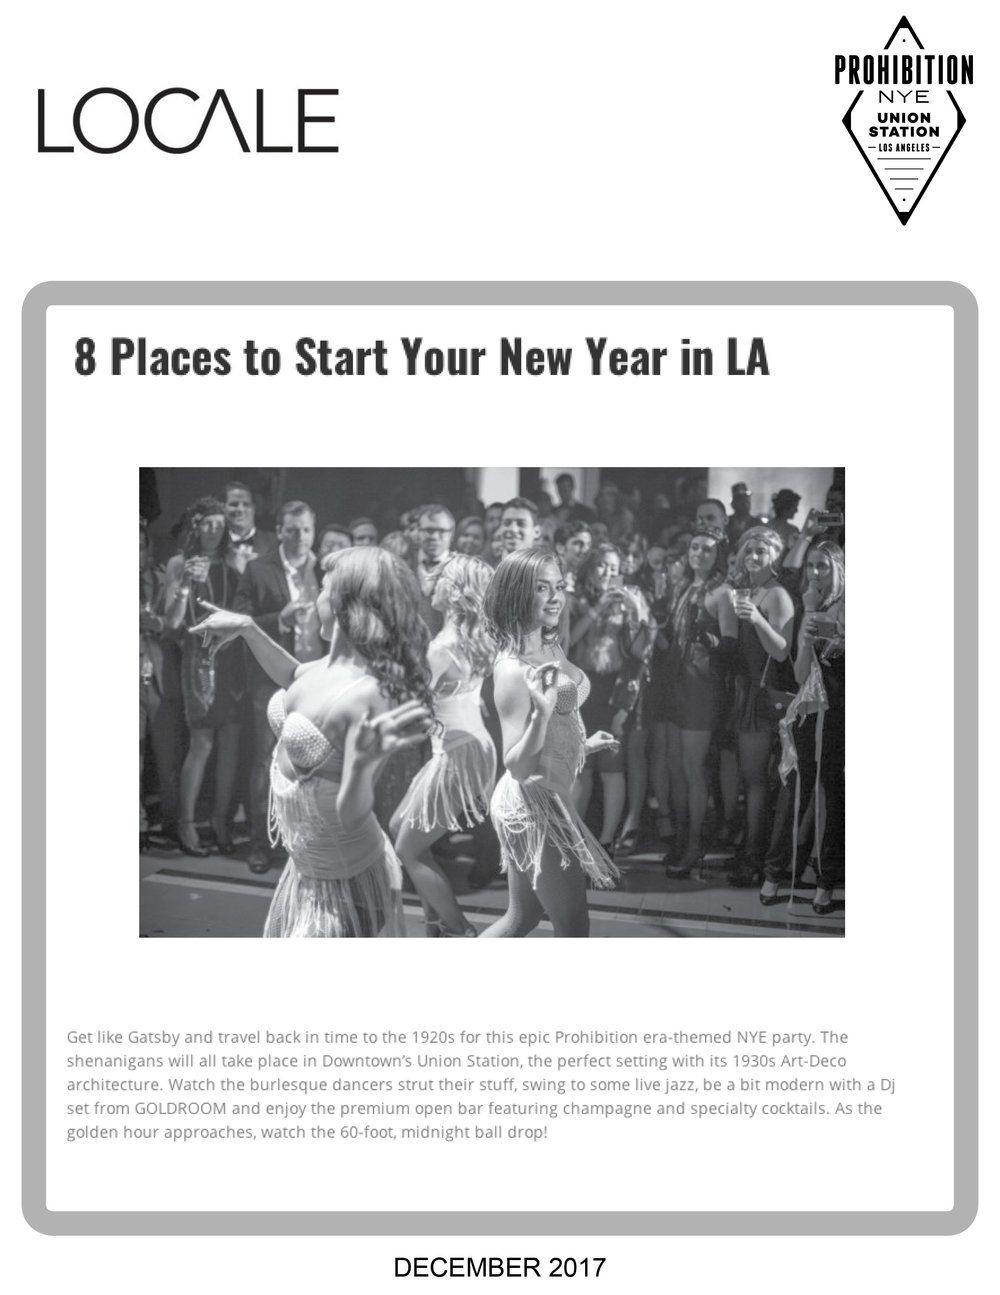 ProhibitionNYE_Locale_Dec2017.jpg